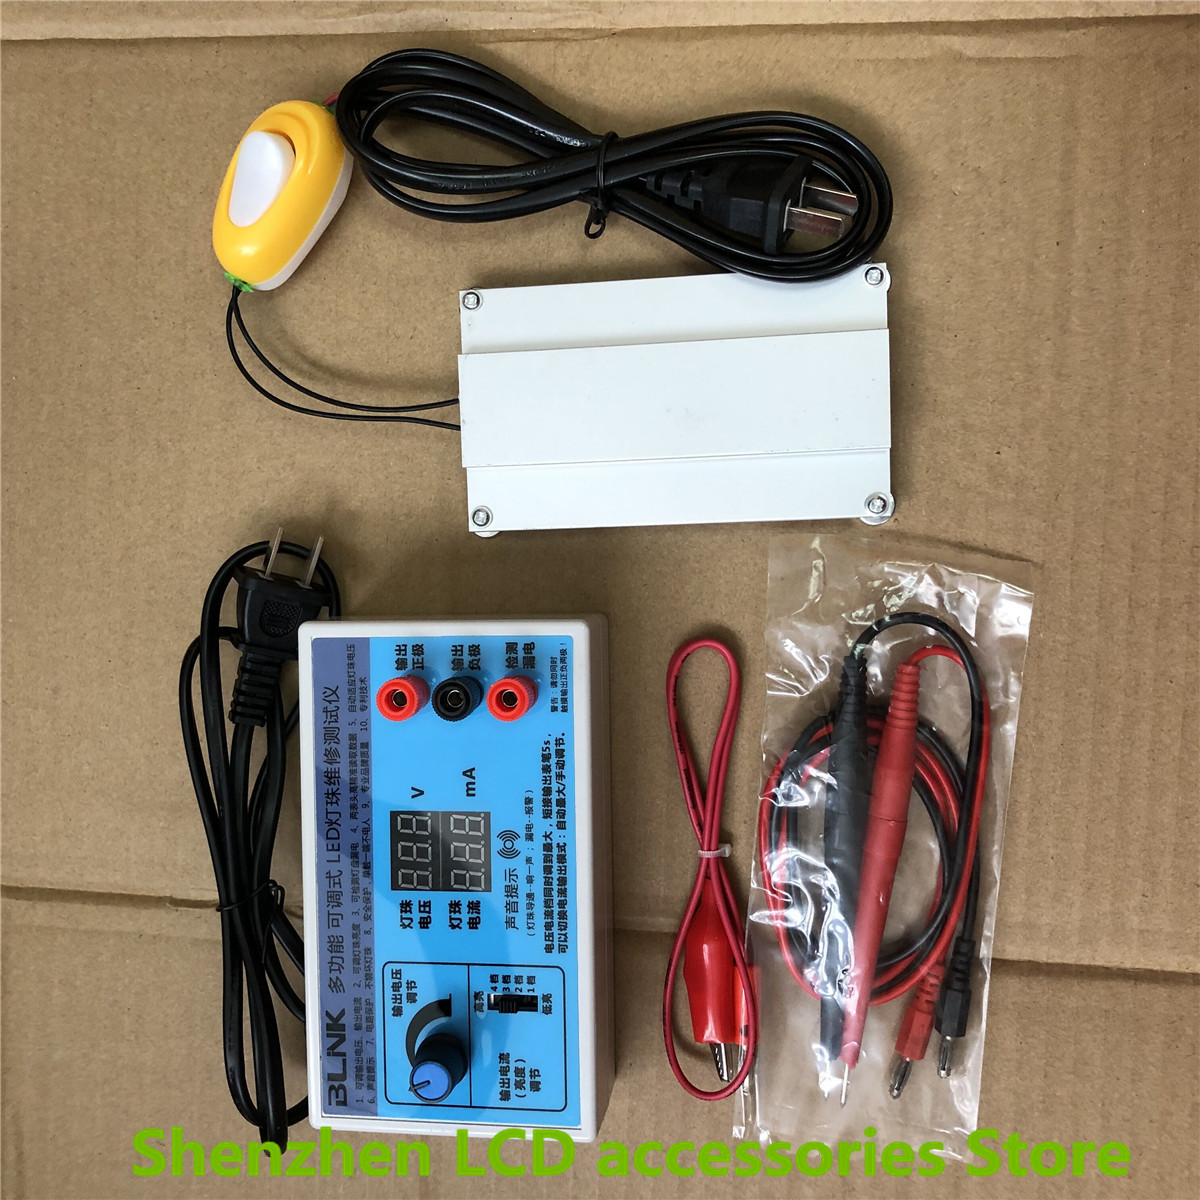 LED Lamp Bead Tester LED Light Bar tester LCD TV Board backlight detector and PTC disassembly pad  100percentNEW